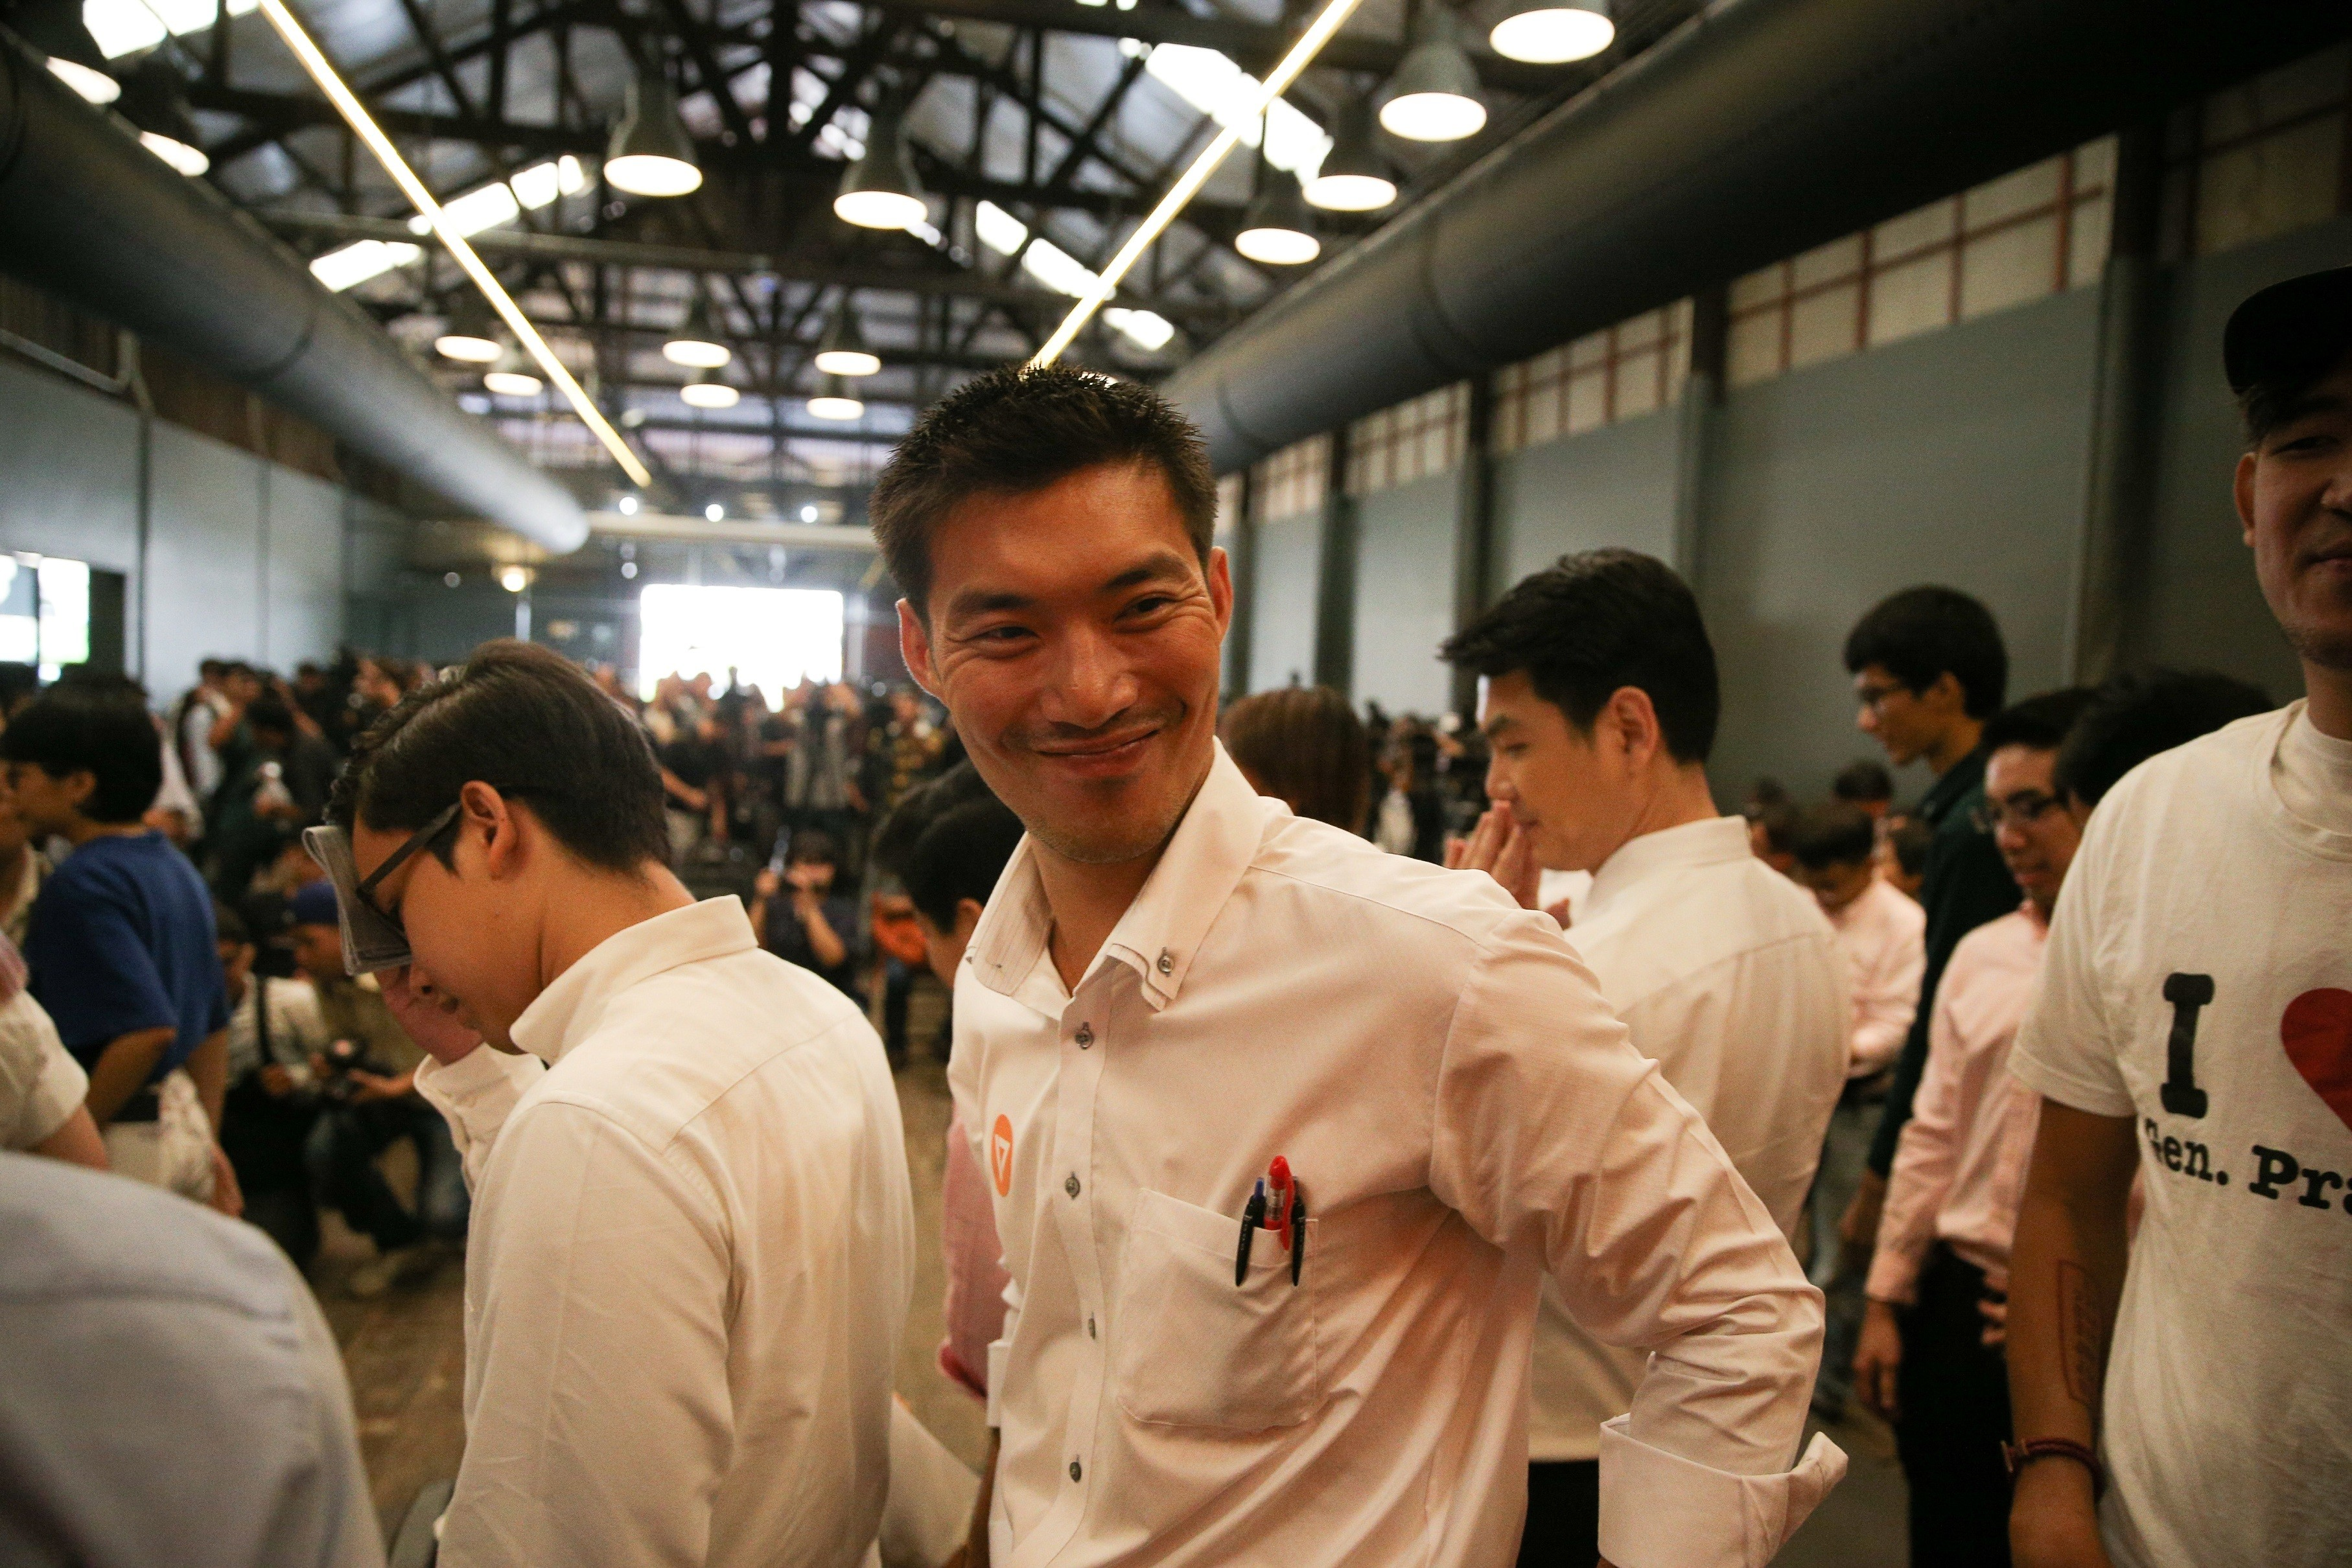 Thanathorn Juangroongruangkit, the founder of Thailand's Future Forward Party, smiles during the launch of the party in Bangkok, Thailand, March 15, 2018. REUTERS/Athit Perawongmetha - RC1683FA5690